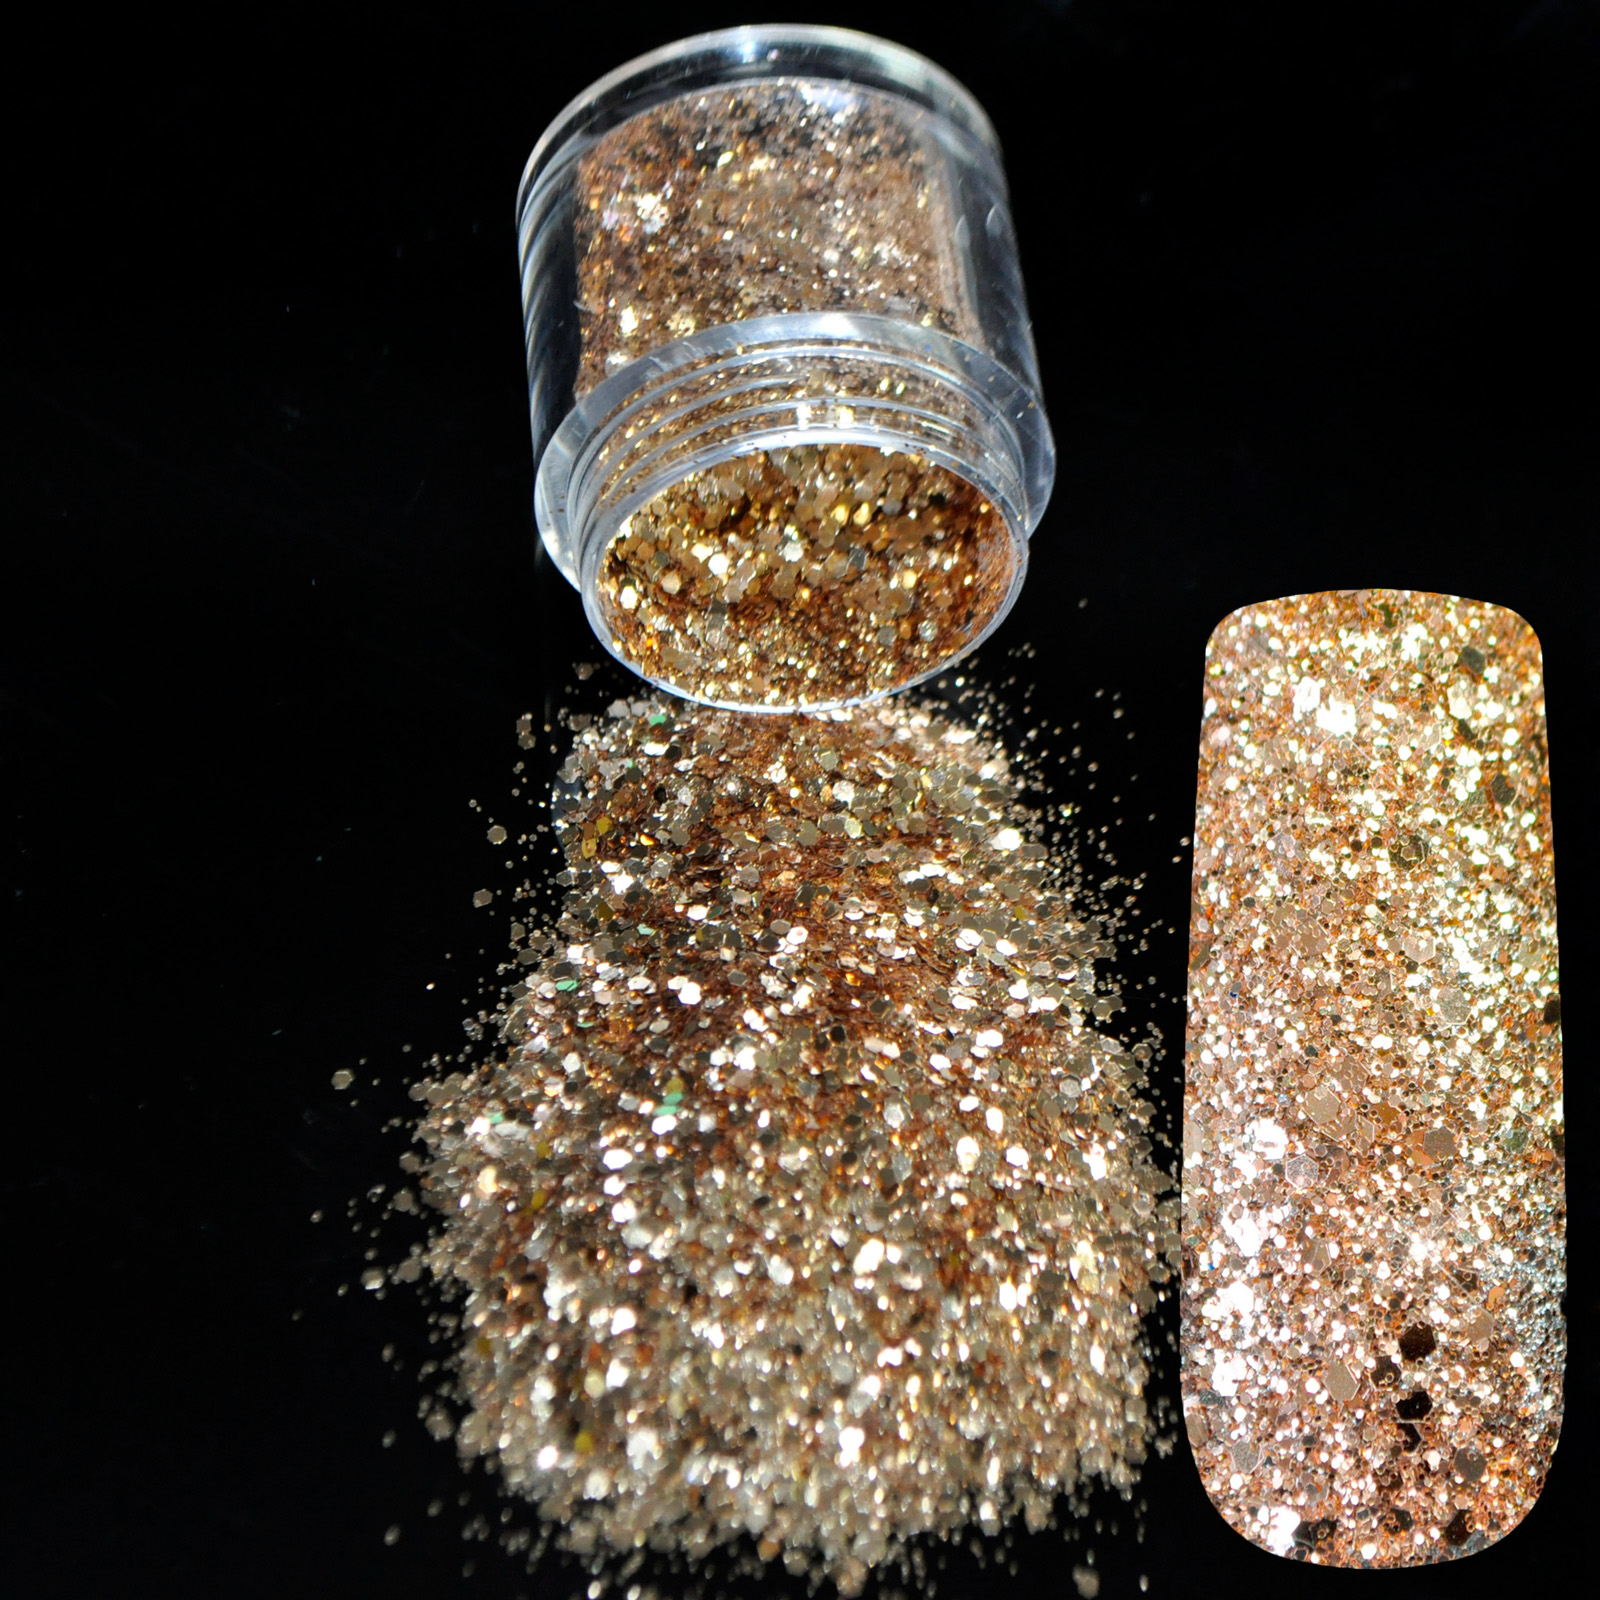 3D Ukuran Campuran Sparkly Light Brown Glitter UV Powder Lembar Acrylic Nail Art Tip Tubuh Shimmer Powder Dekorasi 273